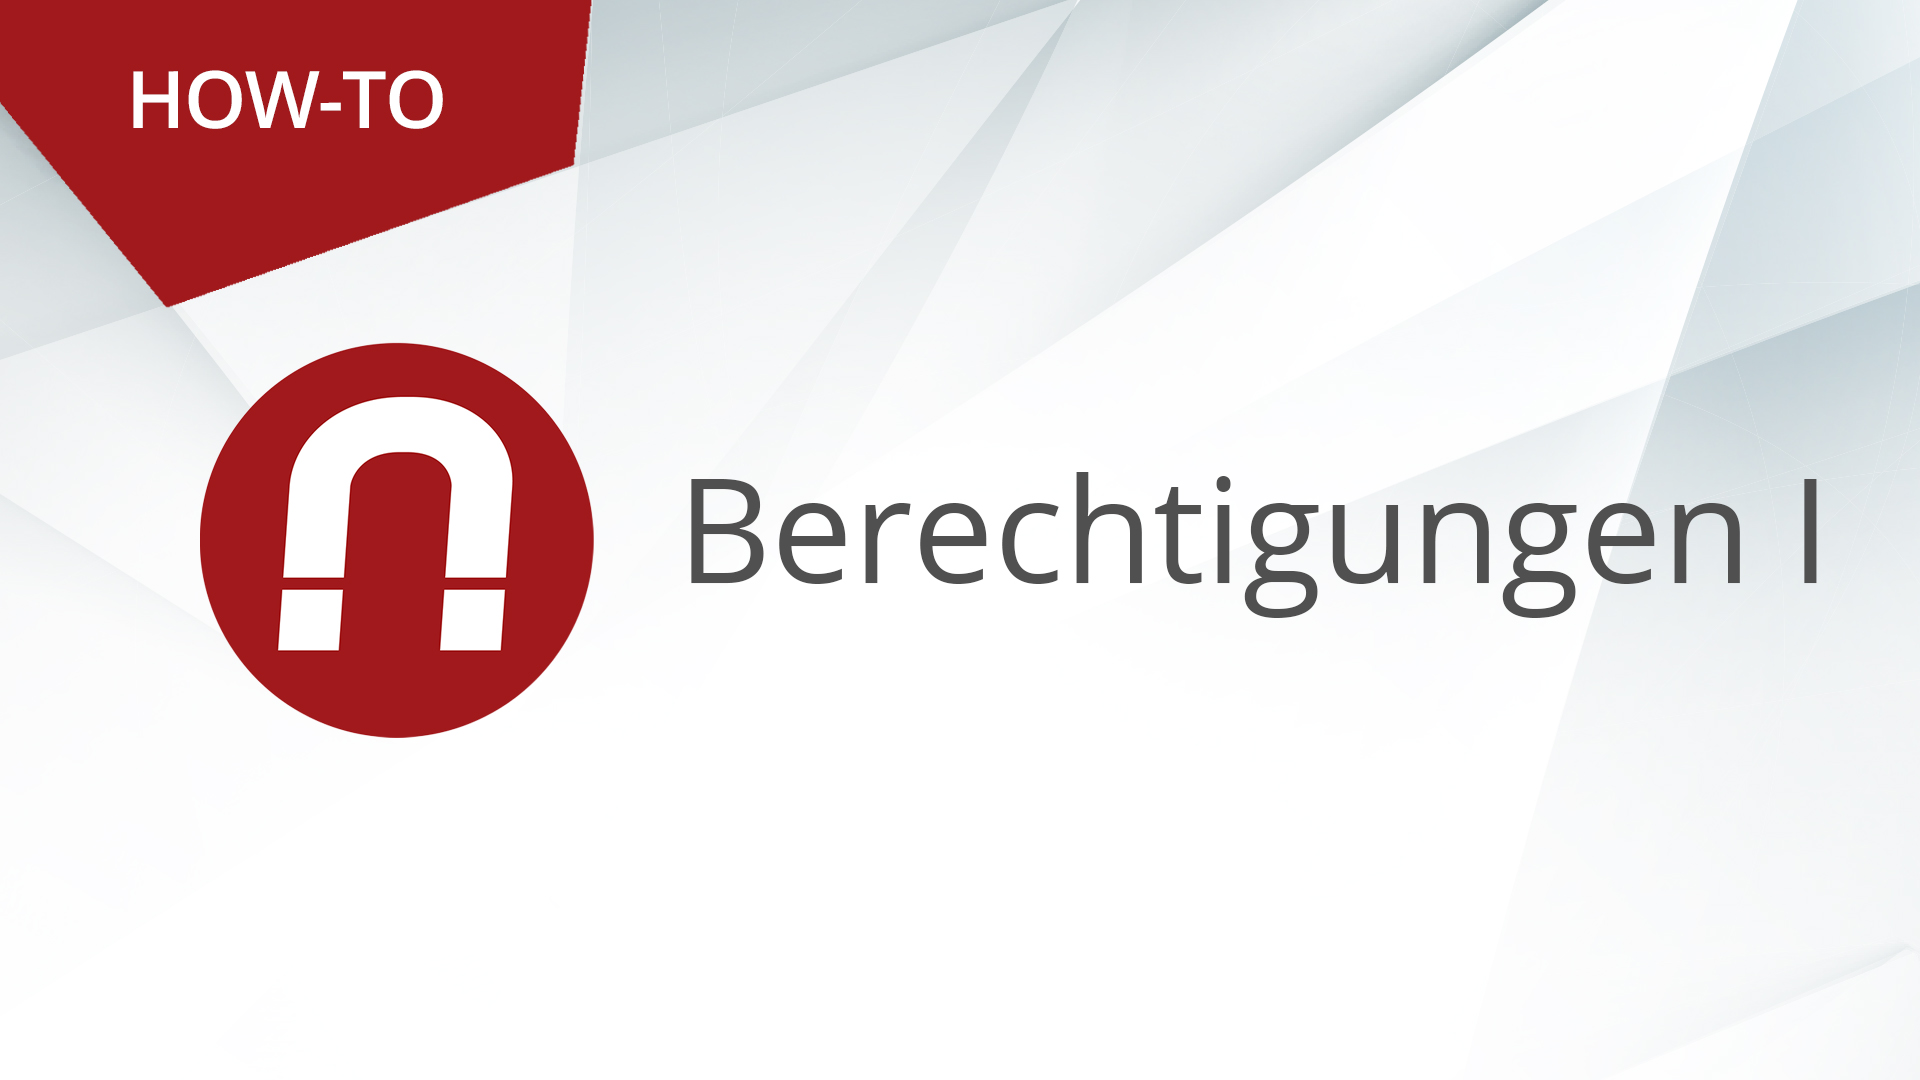 How-To: AMAGNO Advanced – Berechtigungen (TEIL 1)